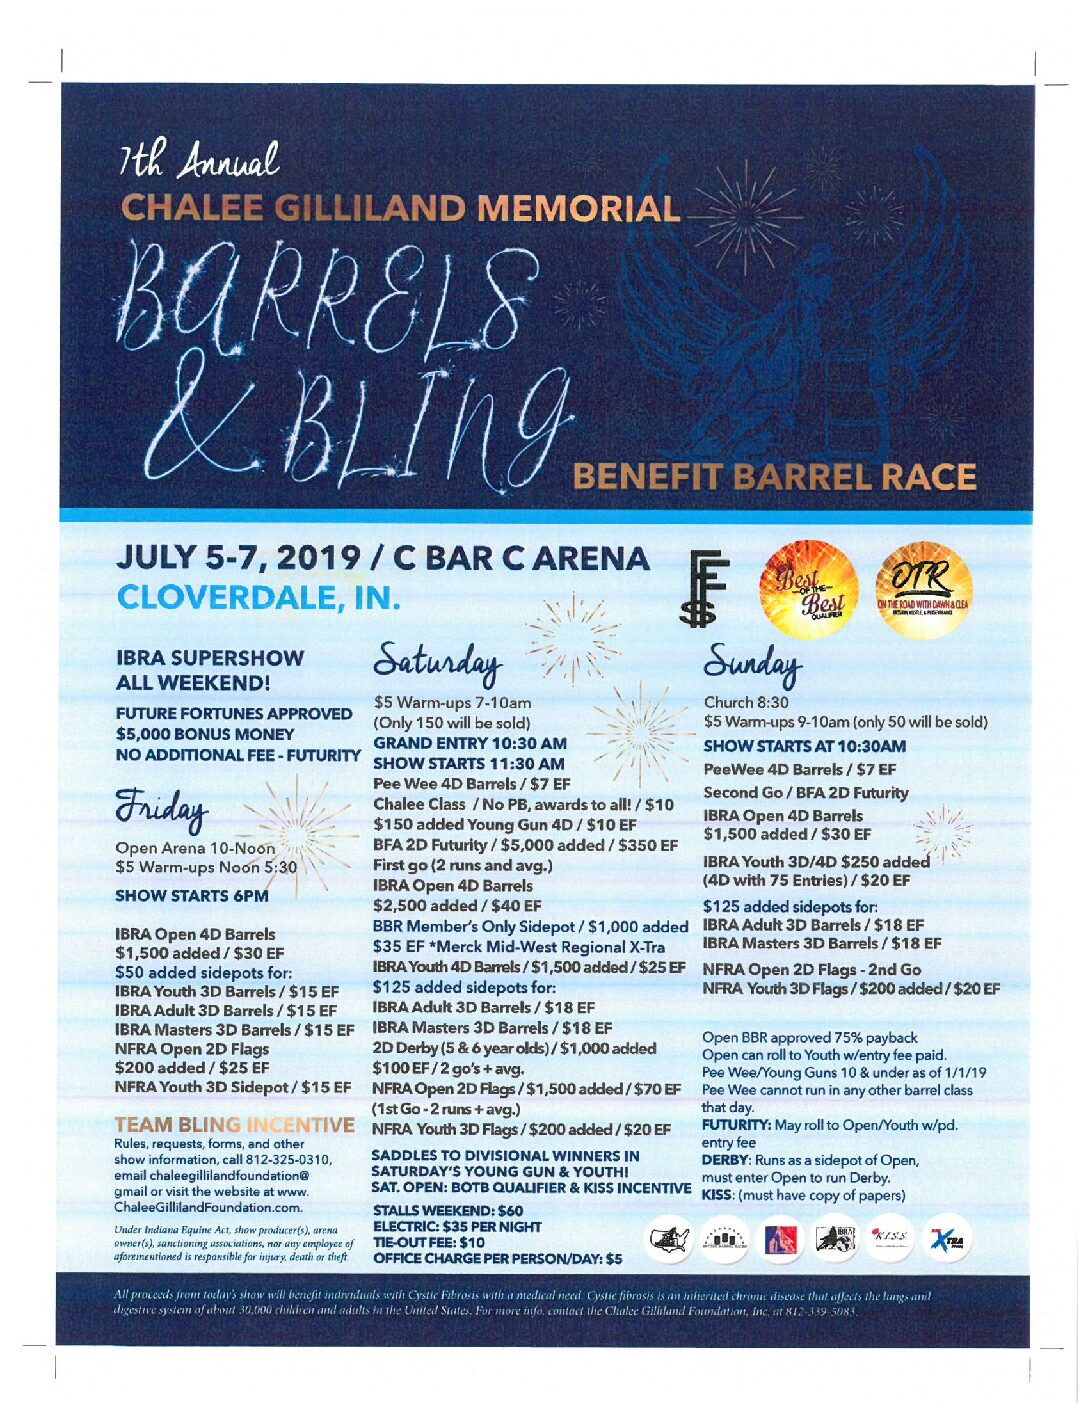 Chalee Gilliland Memorial Barrels And Bling Benefit Race 2019